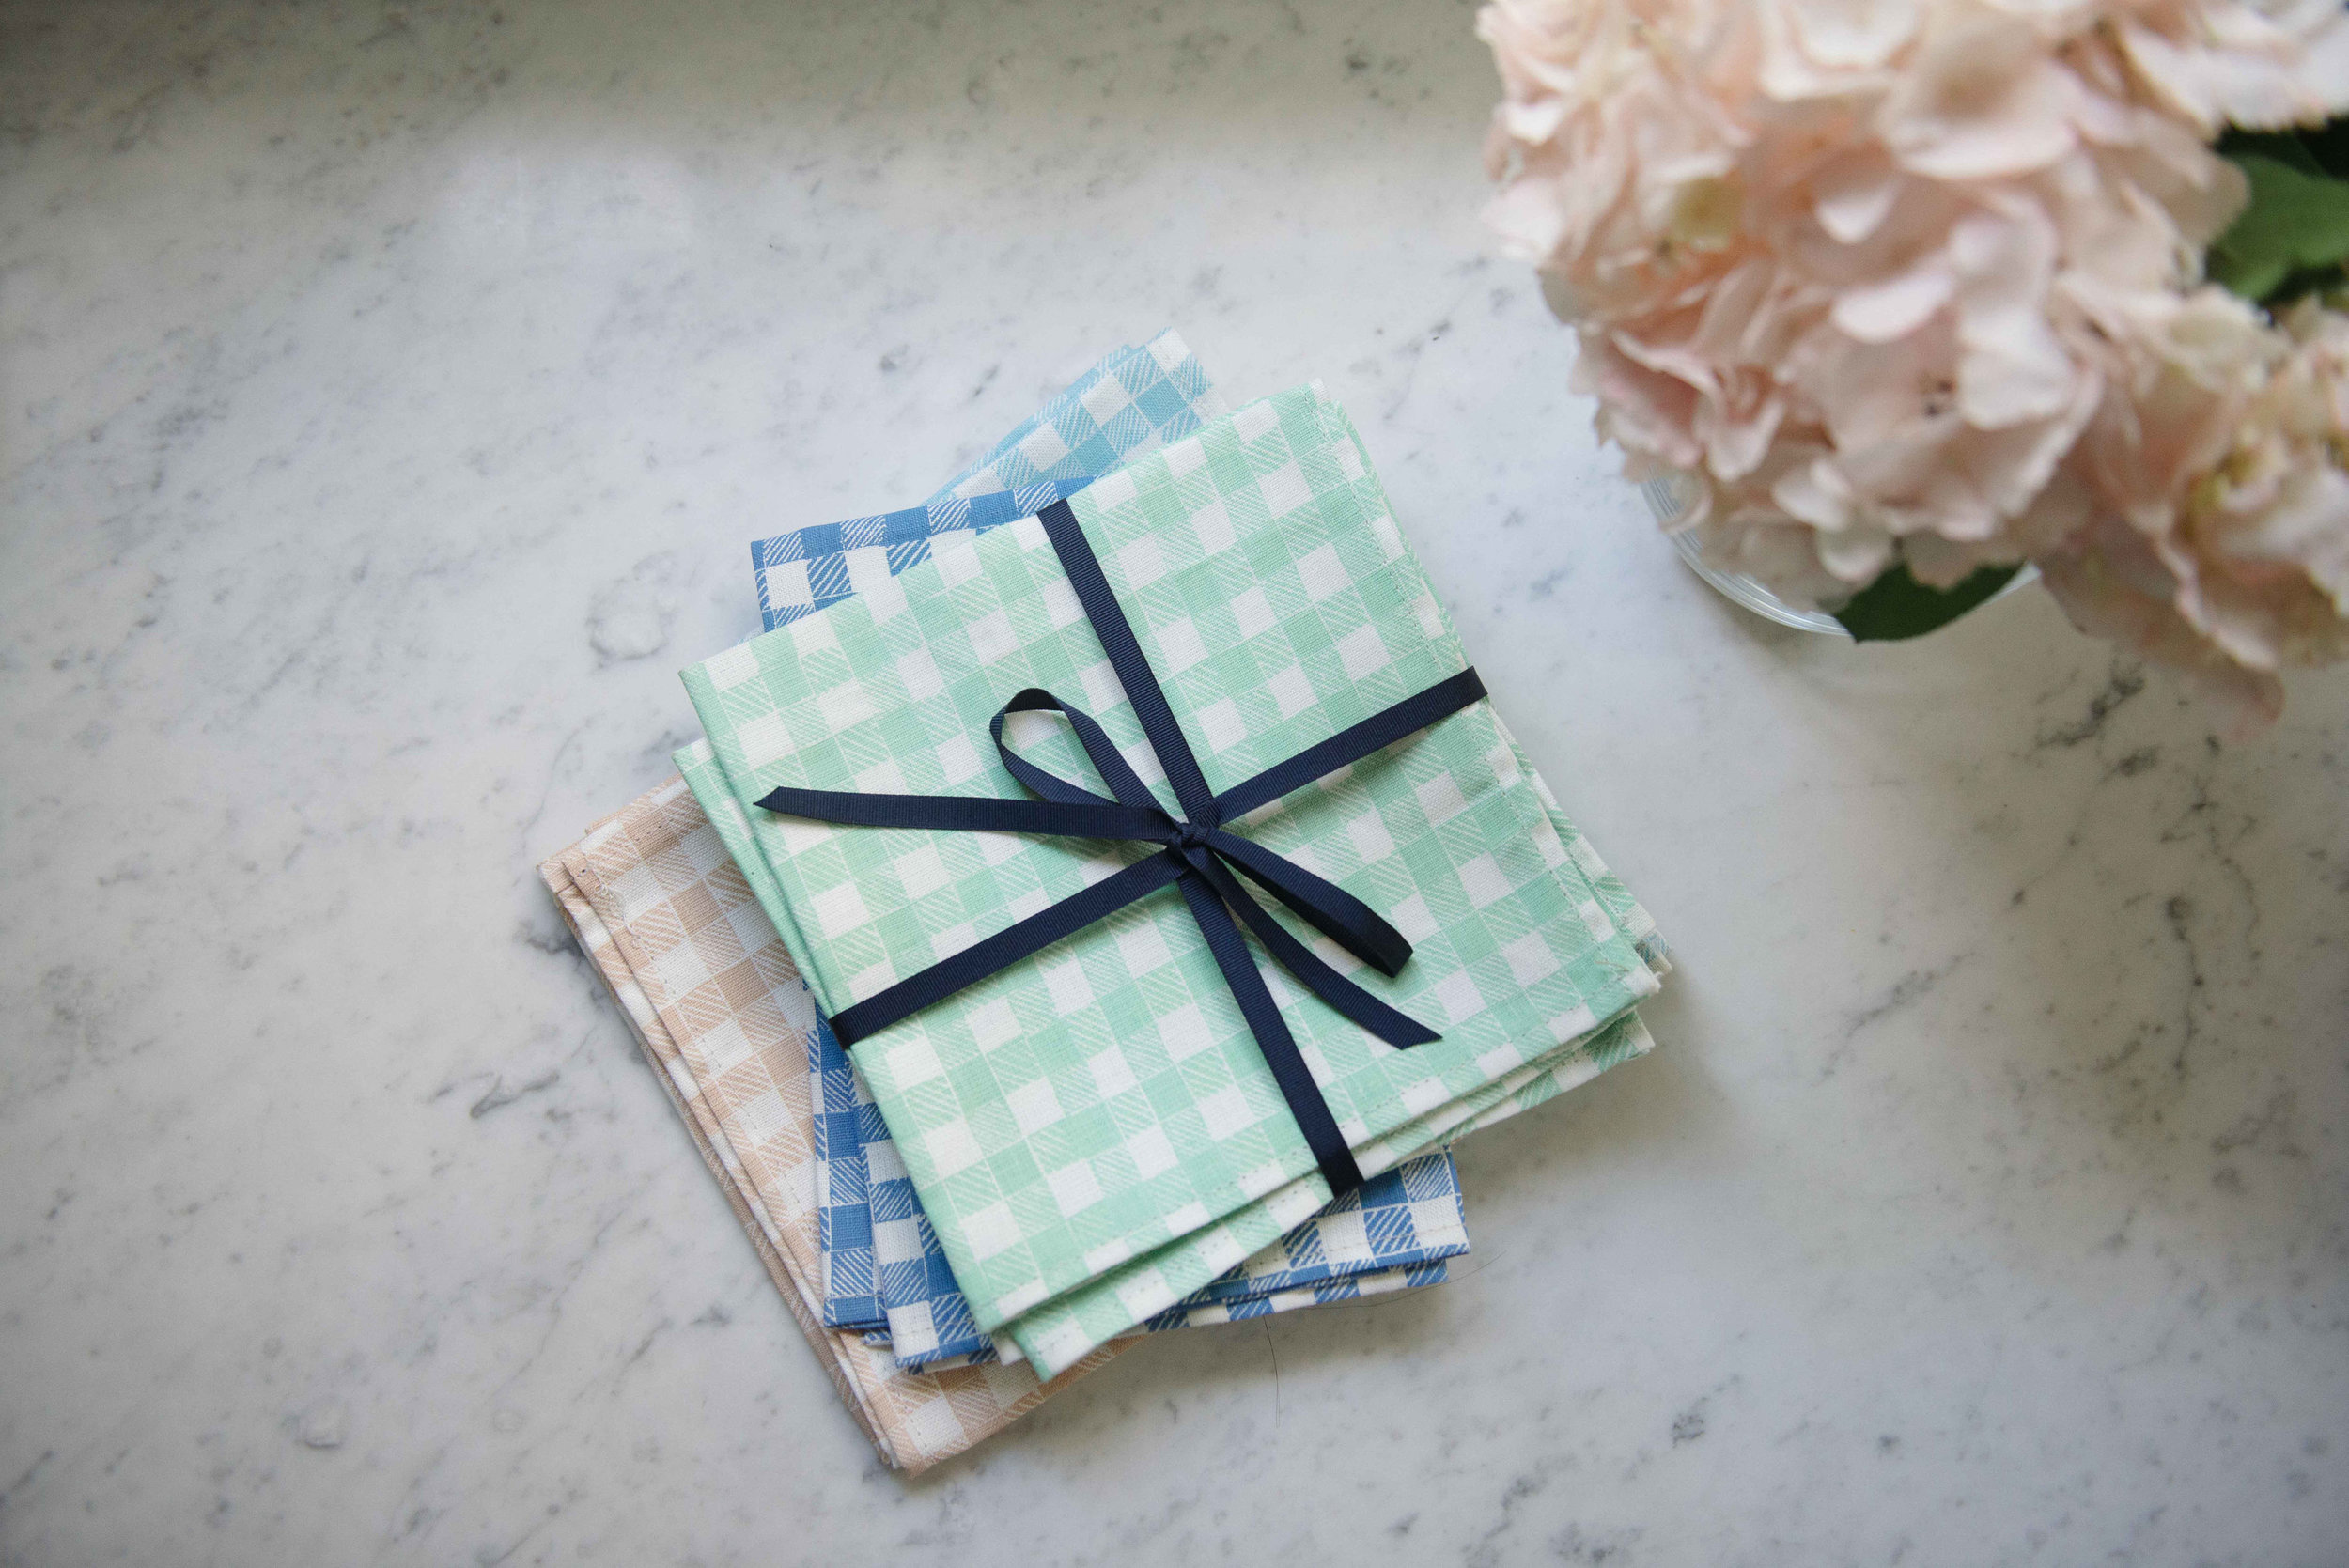 Block Print Gingham Napkins in Green, Blue, Light Blue, and Beige, Photo by Emily Young